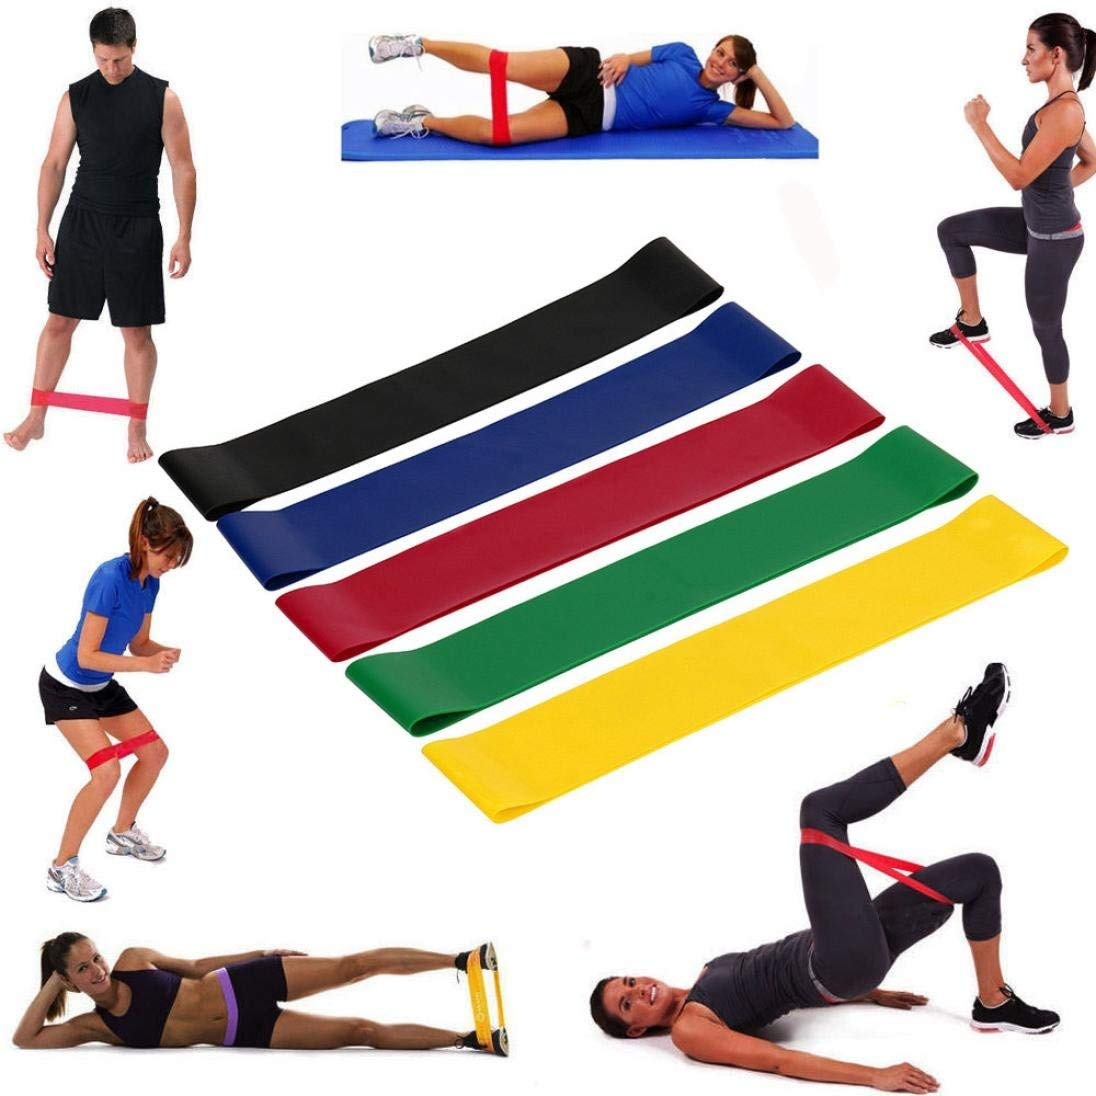 Weiyun Set of 5 Loops Exercise Workout Resistance Bands Different Strength Natural Latex Bands for Home Fitness, Stretching, Physical Therapy, Gym, Yoga